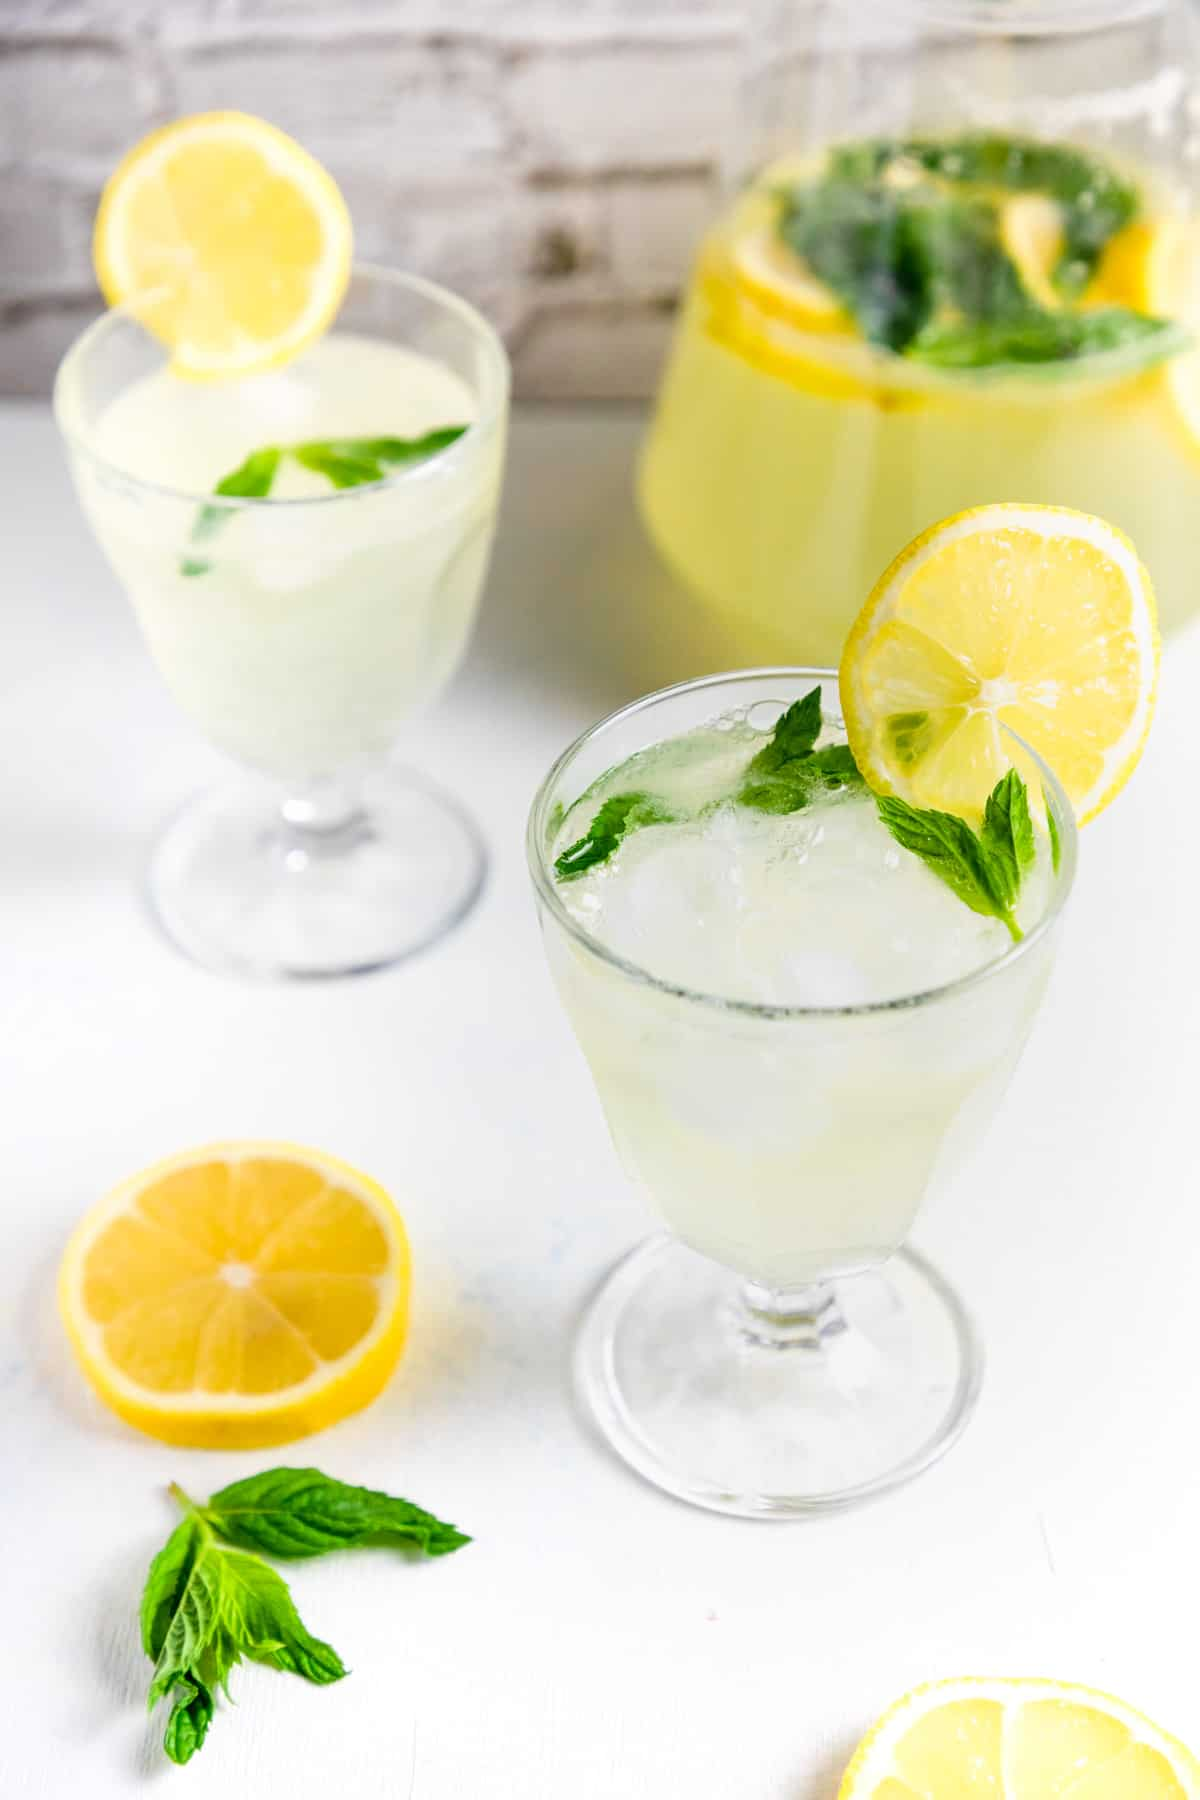 two cups of homemade lemonade with mint and ice.